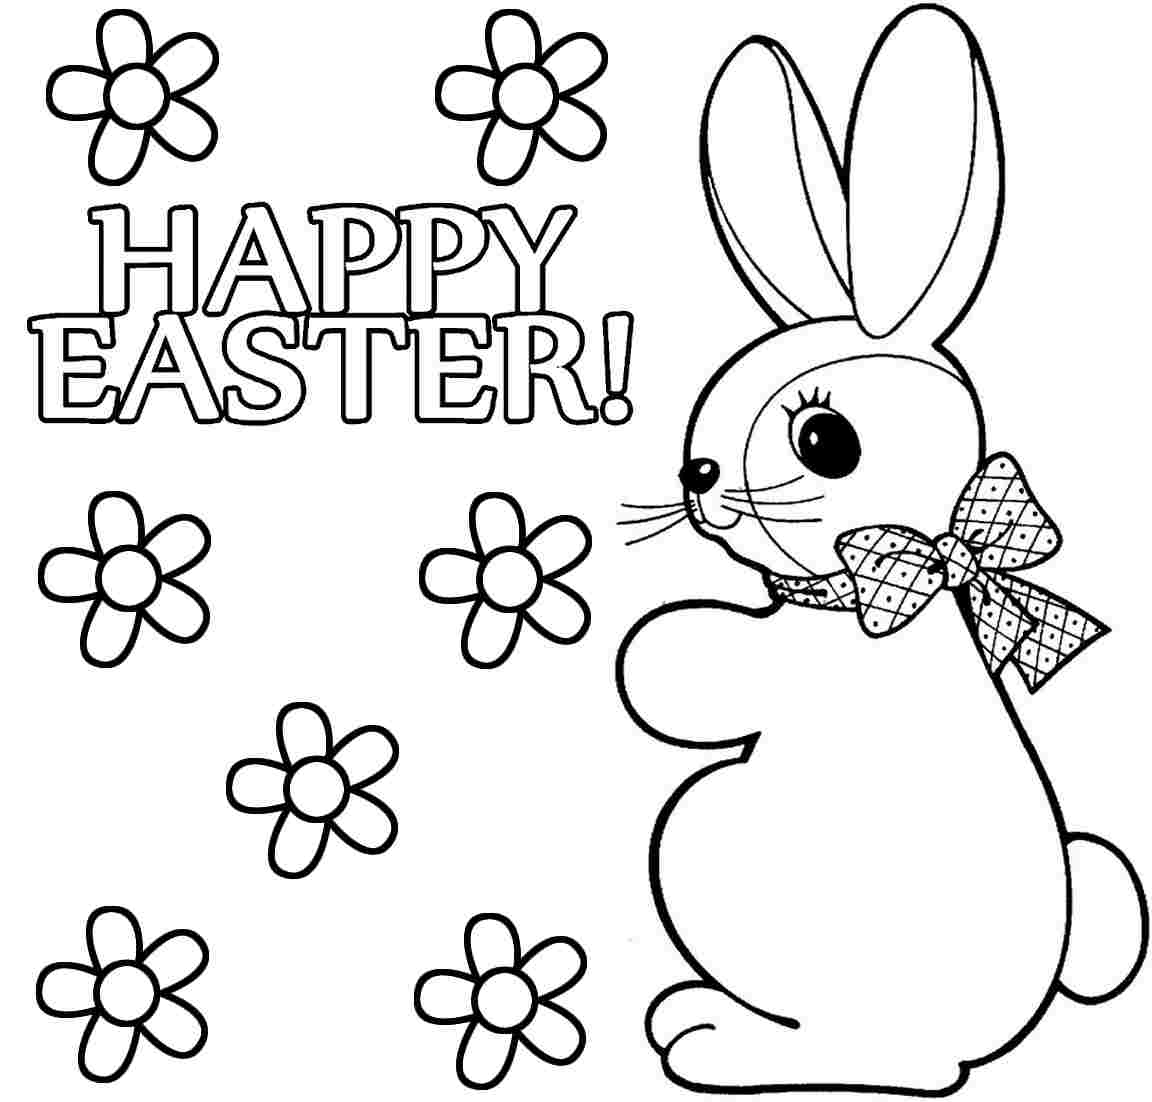 easter coloring pages printable 15 printable easter coloring pages holiday vault printable pages easter coloring